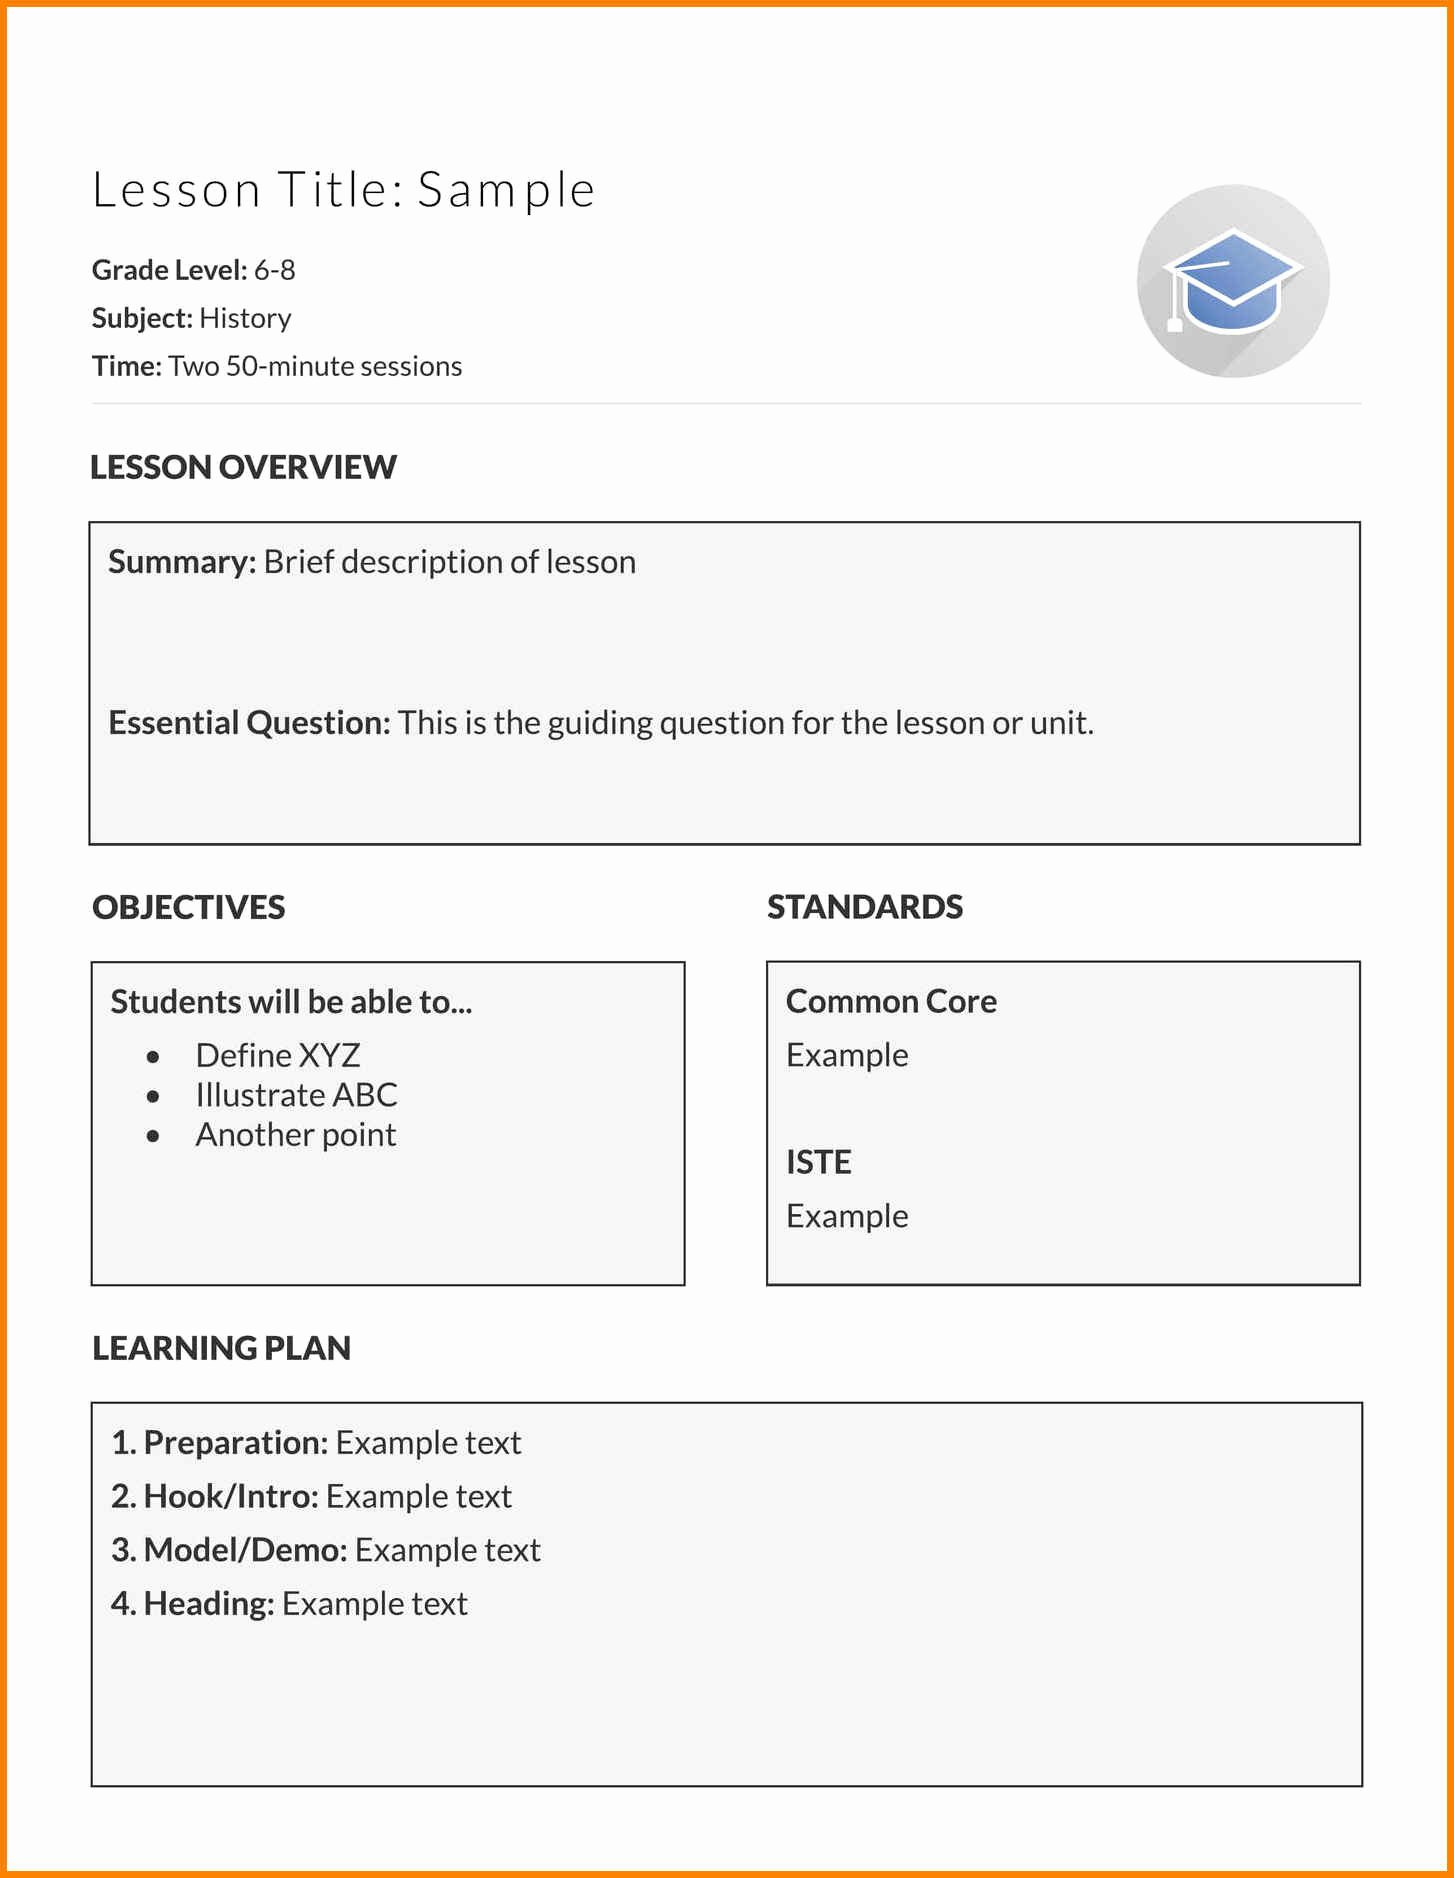 Basic Lesson Plan Template Awesome 10 Easy Lesson Plan Templates